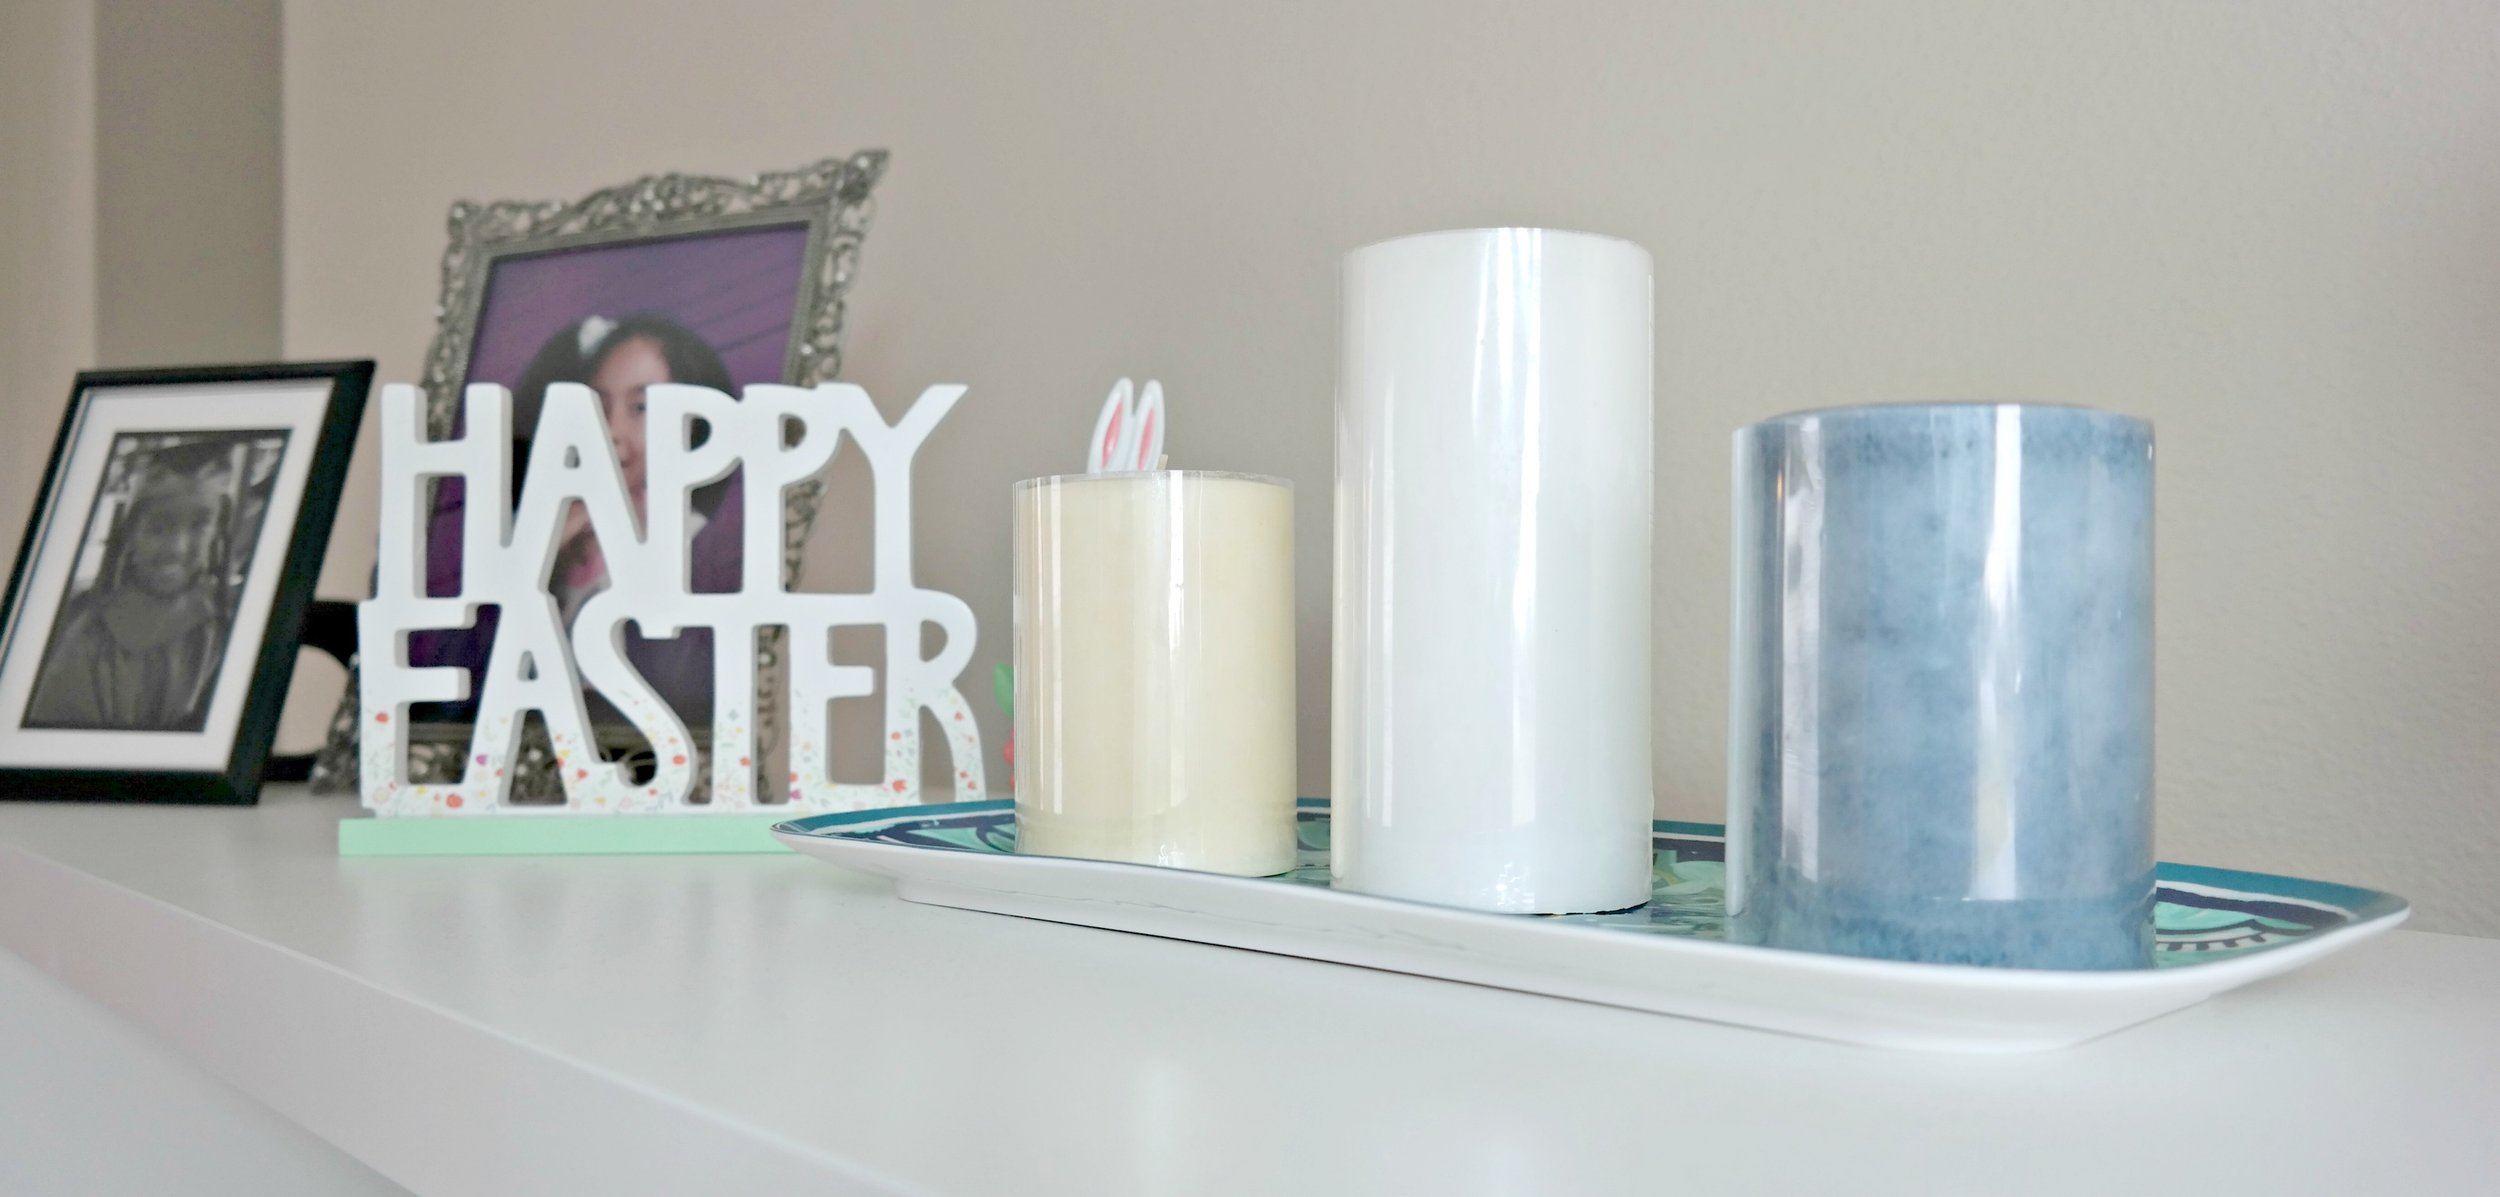 Candles and Easter sign for table or entertainment center.